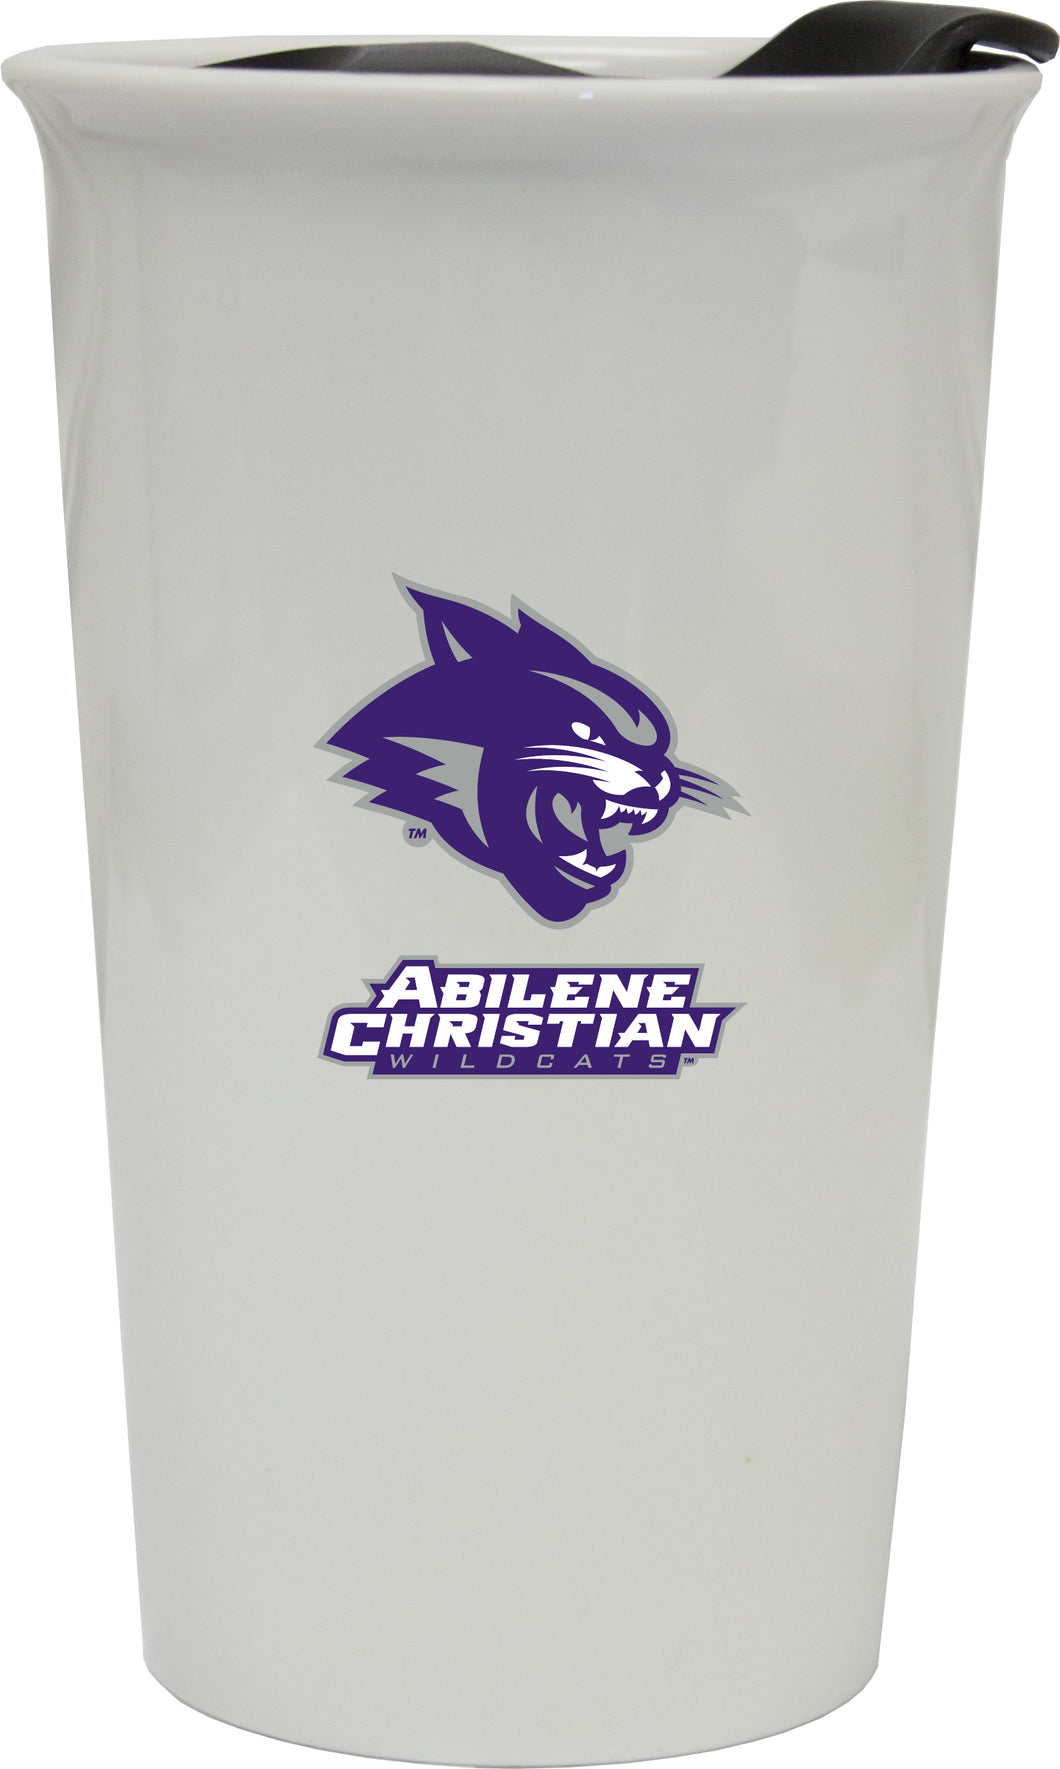 Abilene Christian University Ceramic Tumbler